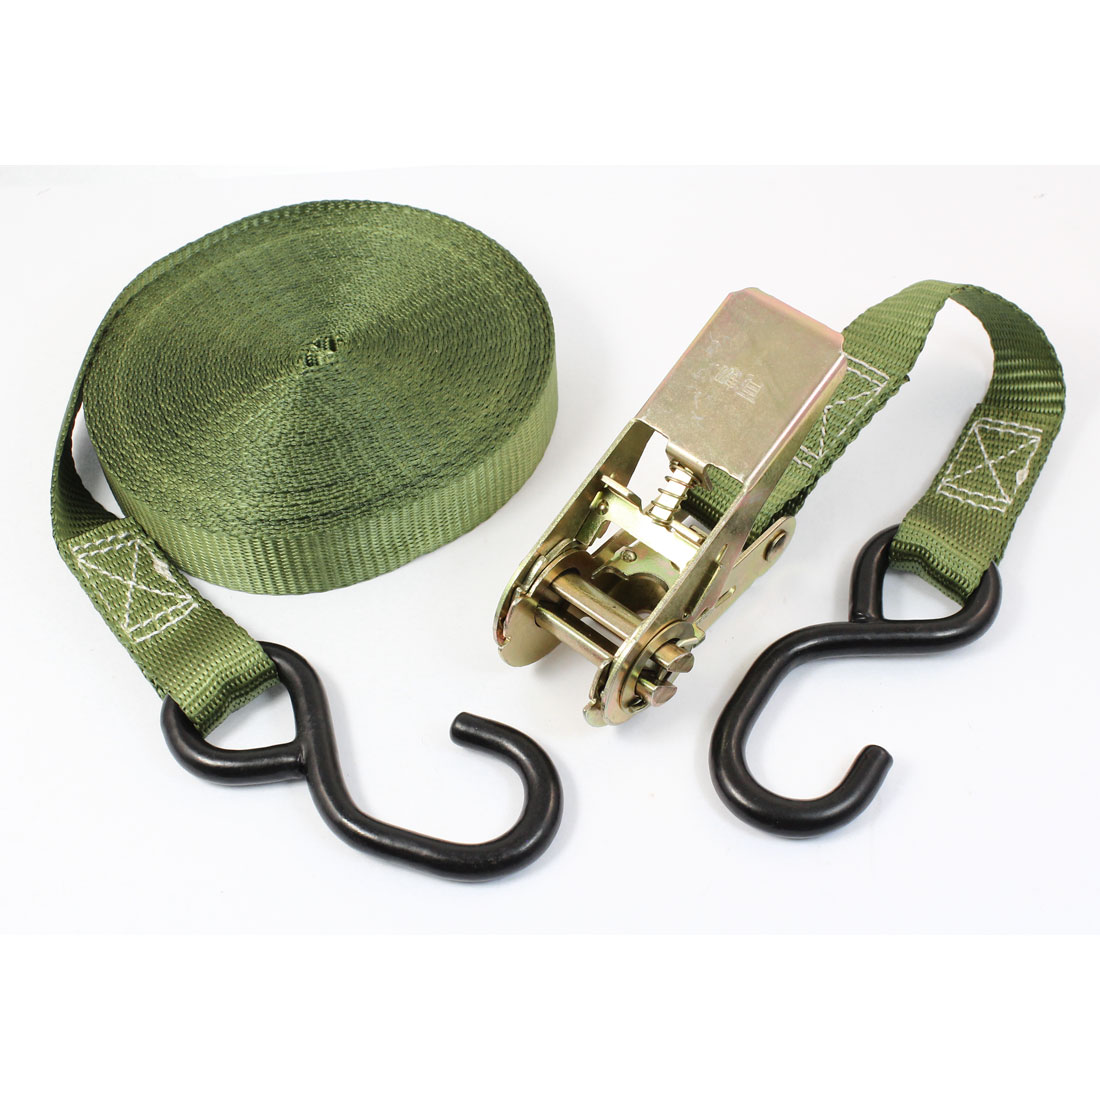 S Shape Metal Hook Cargo Binding Ratchet Tie Down Strap 10M 33ft Green